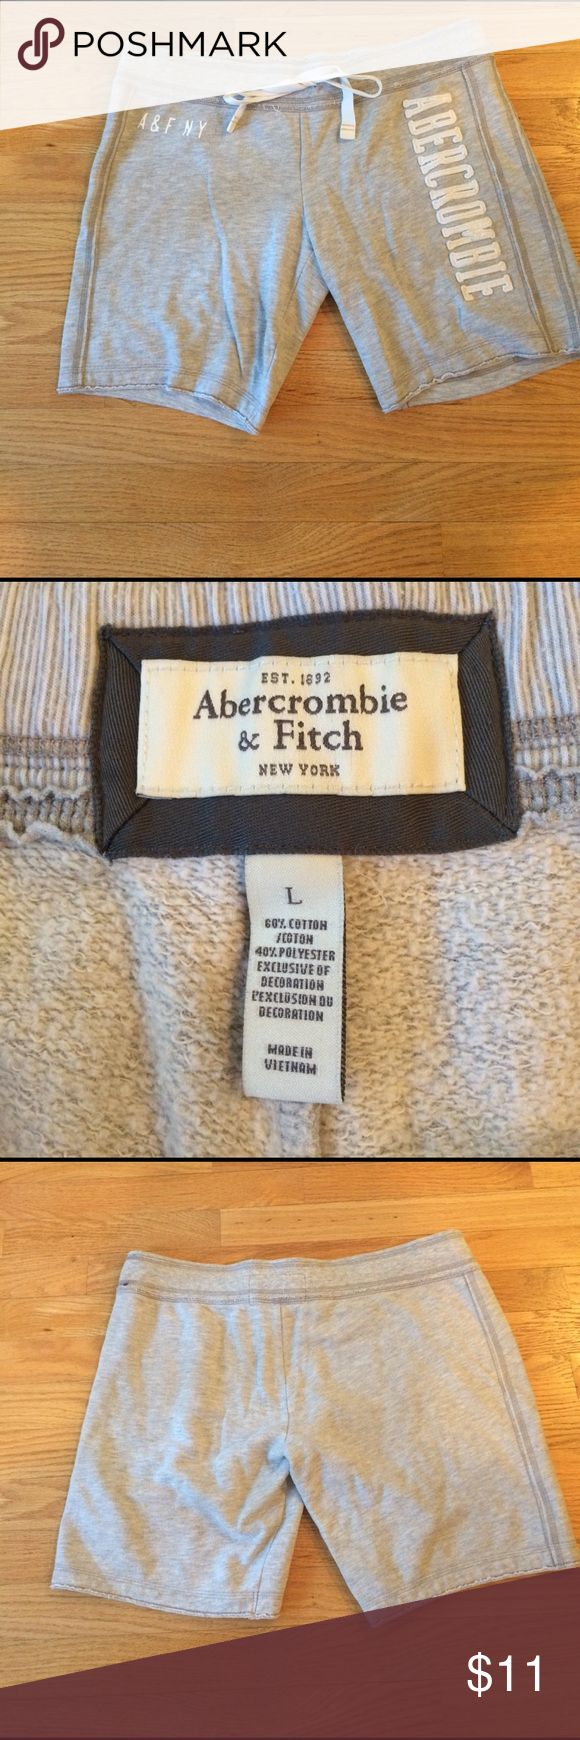 Abercrombie and Fitch Bermuda shorts Abercrombie and Fitch Bermuda shorts. Gray. Perfect condition. Size large. Abercrombie & Fitch Shorts Bermudas